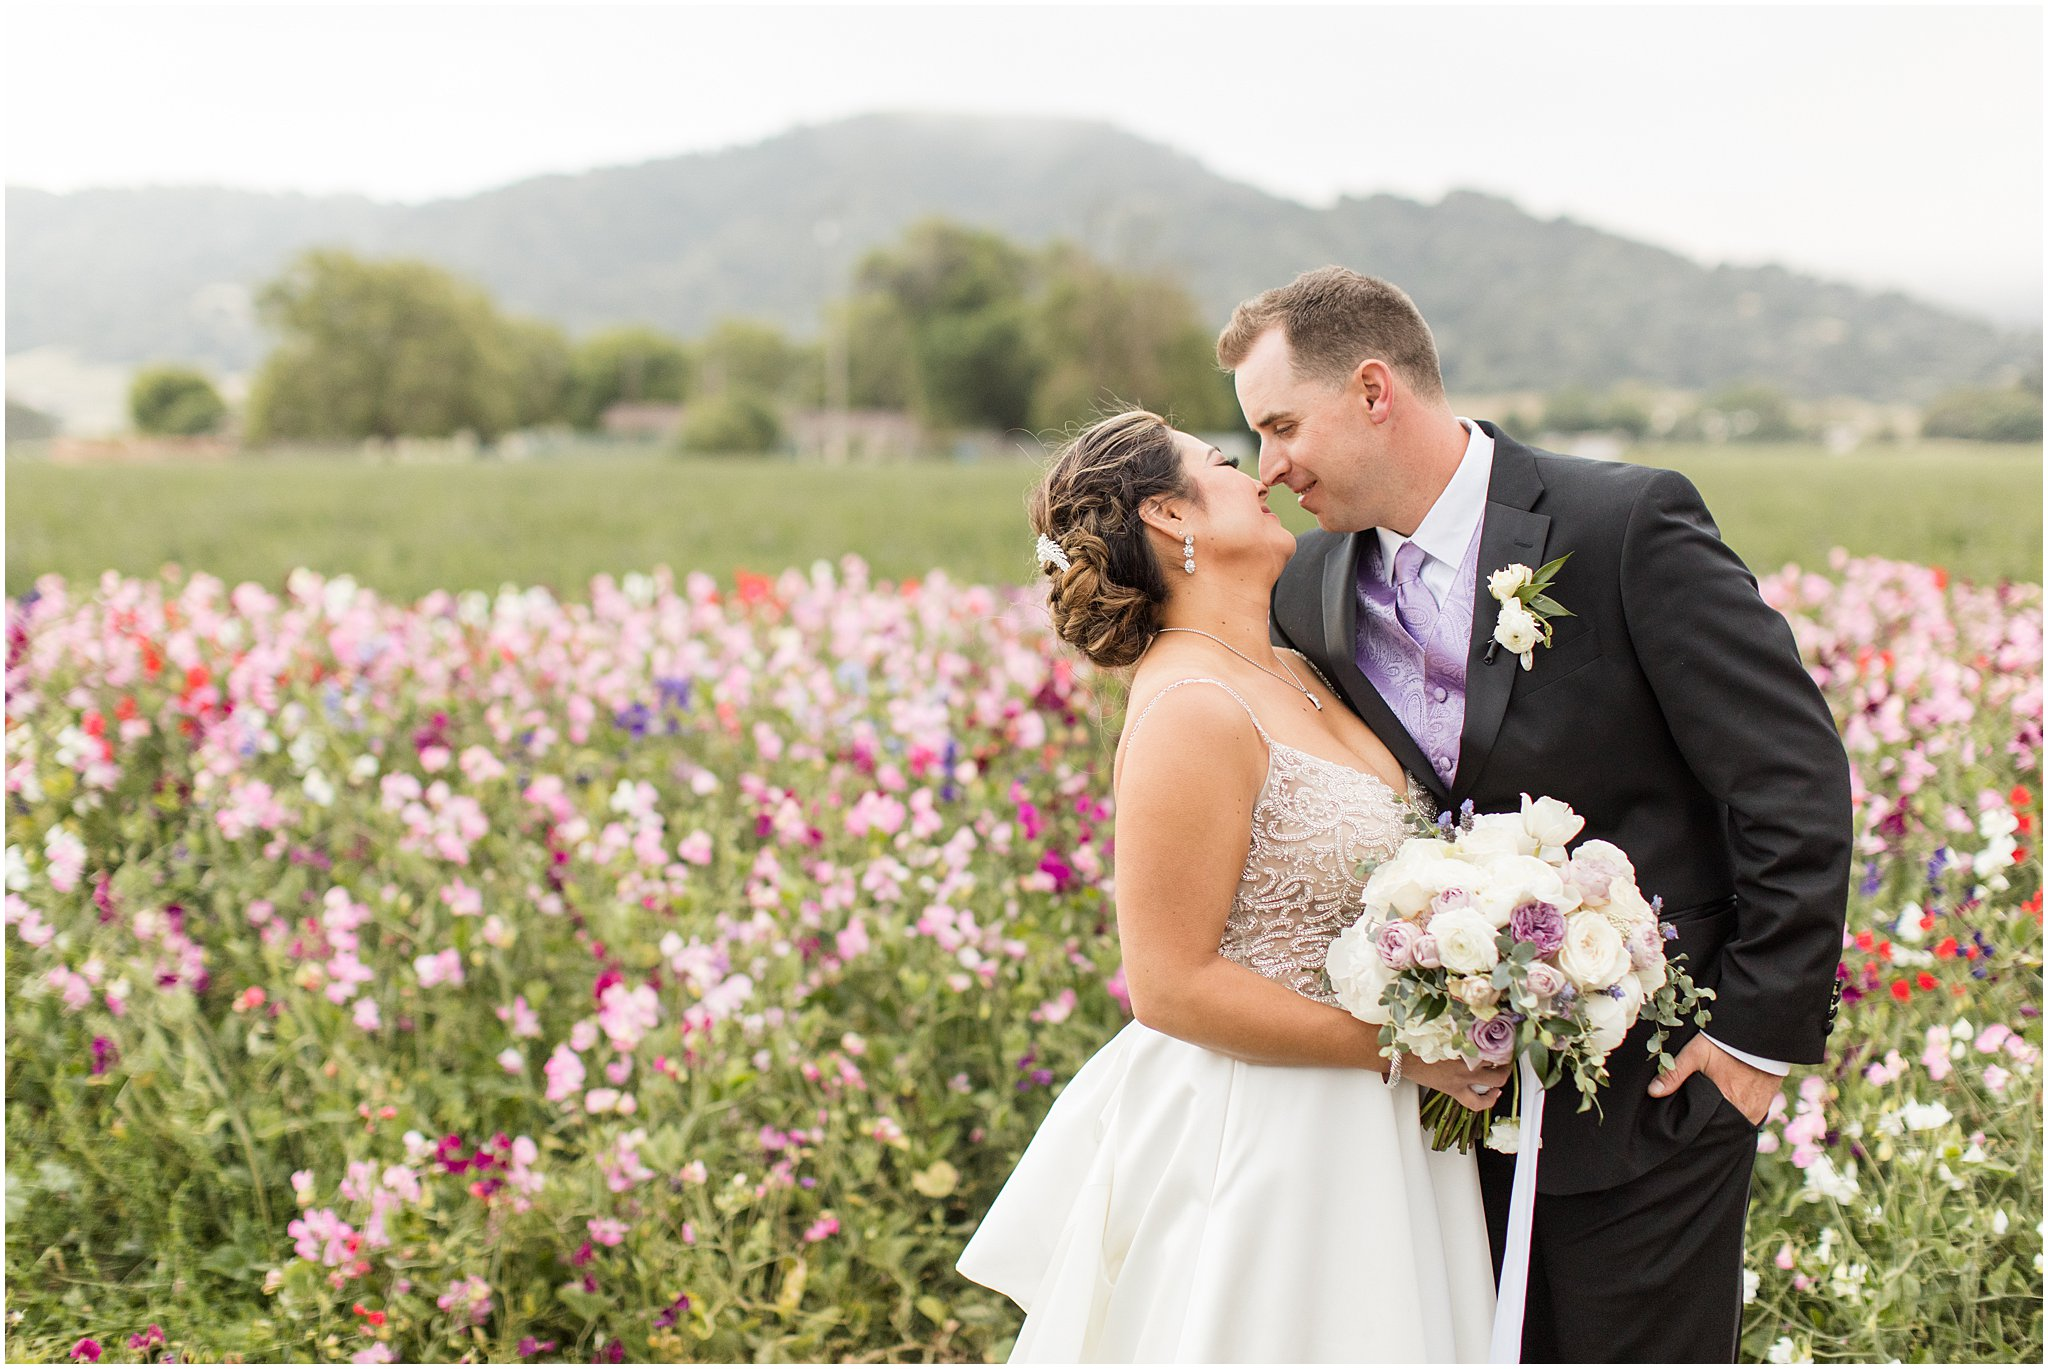 2019 wedding san juan bautista hacienda de leal vineyards bay area wedding photographer_0076.jpg